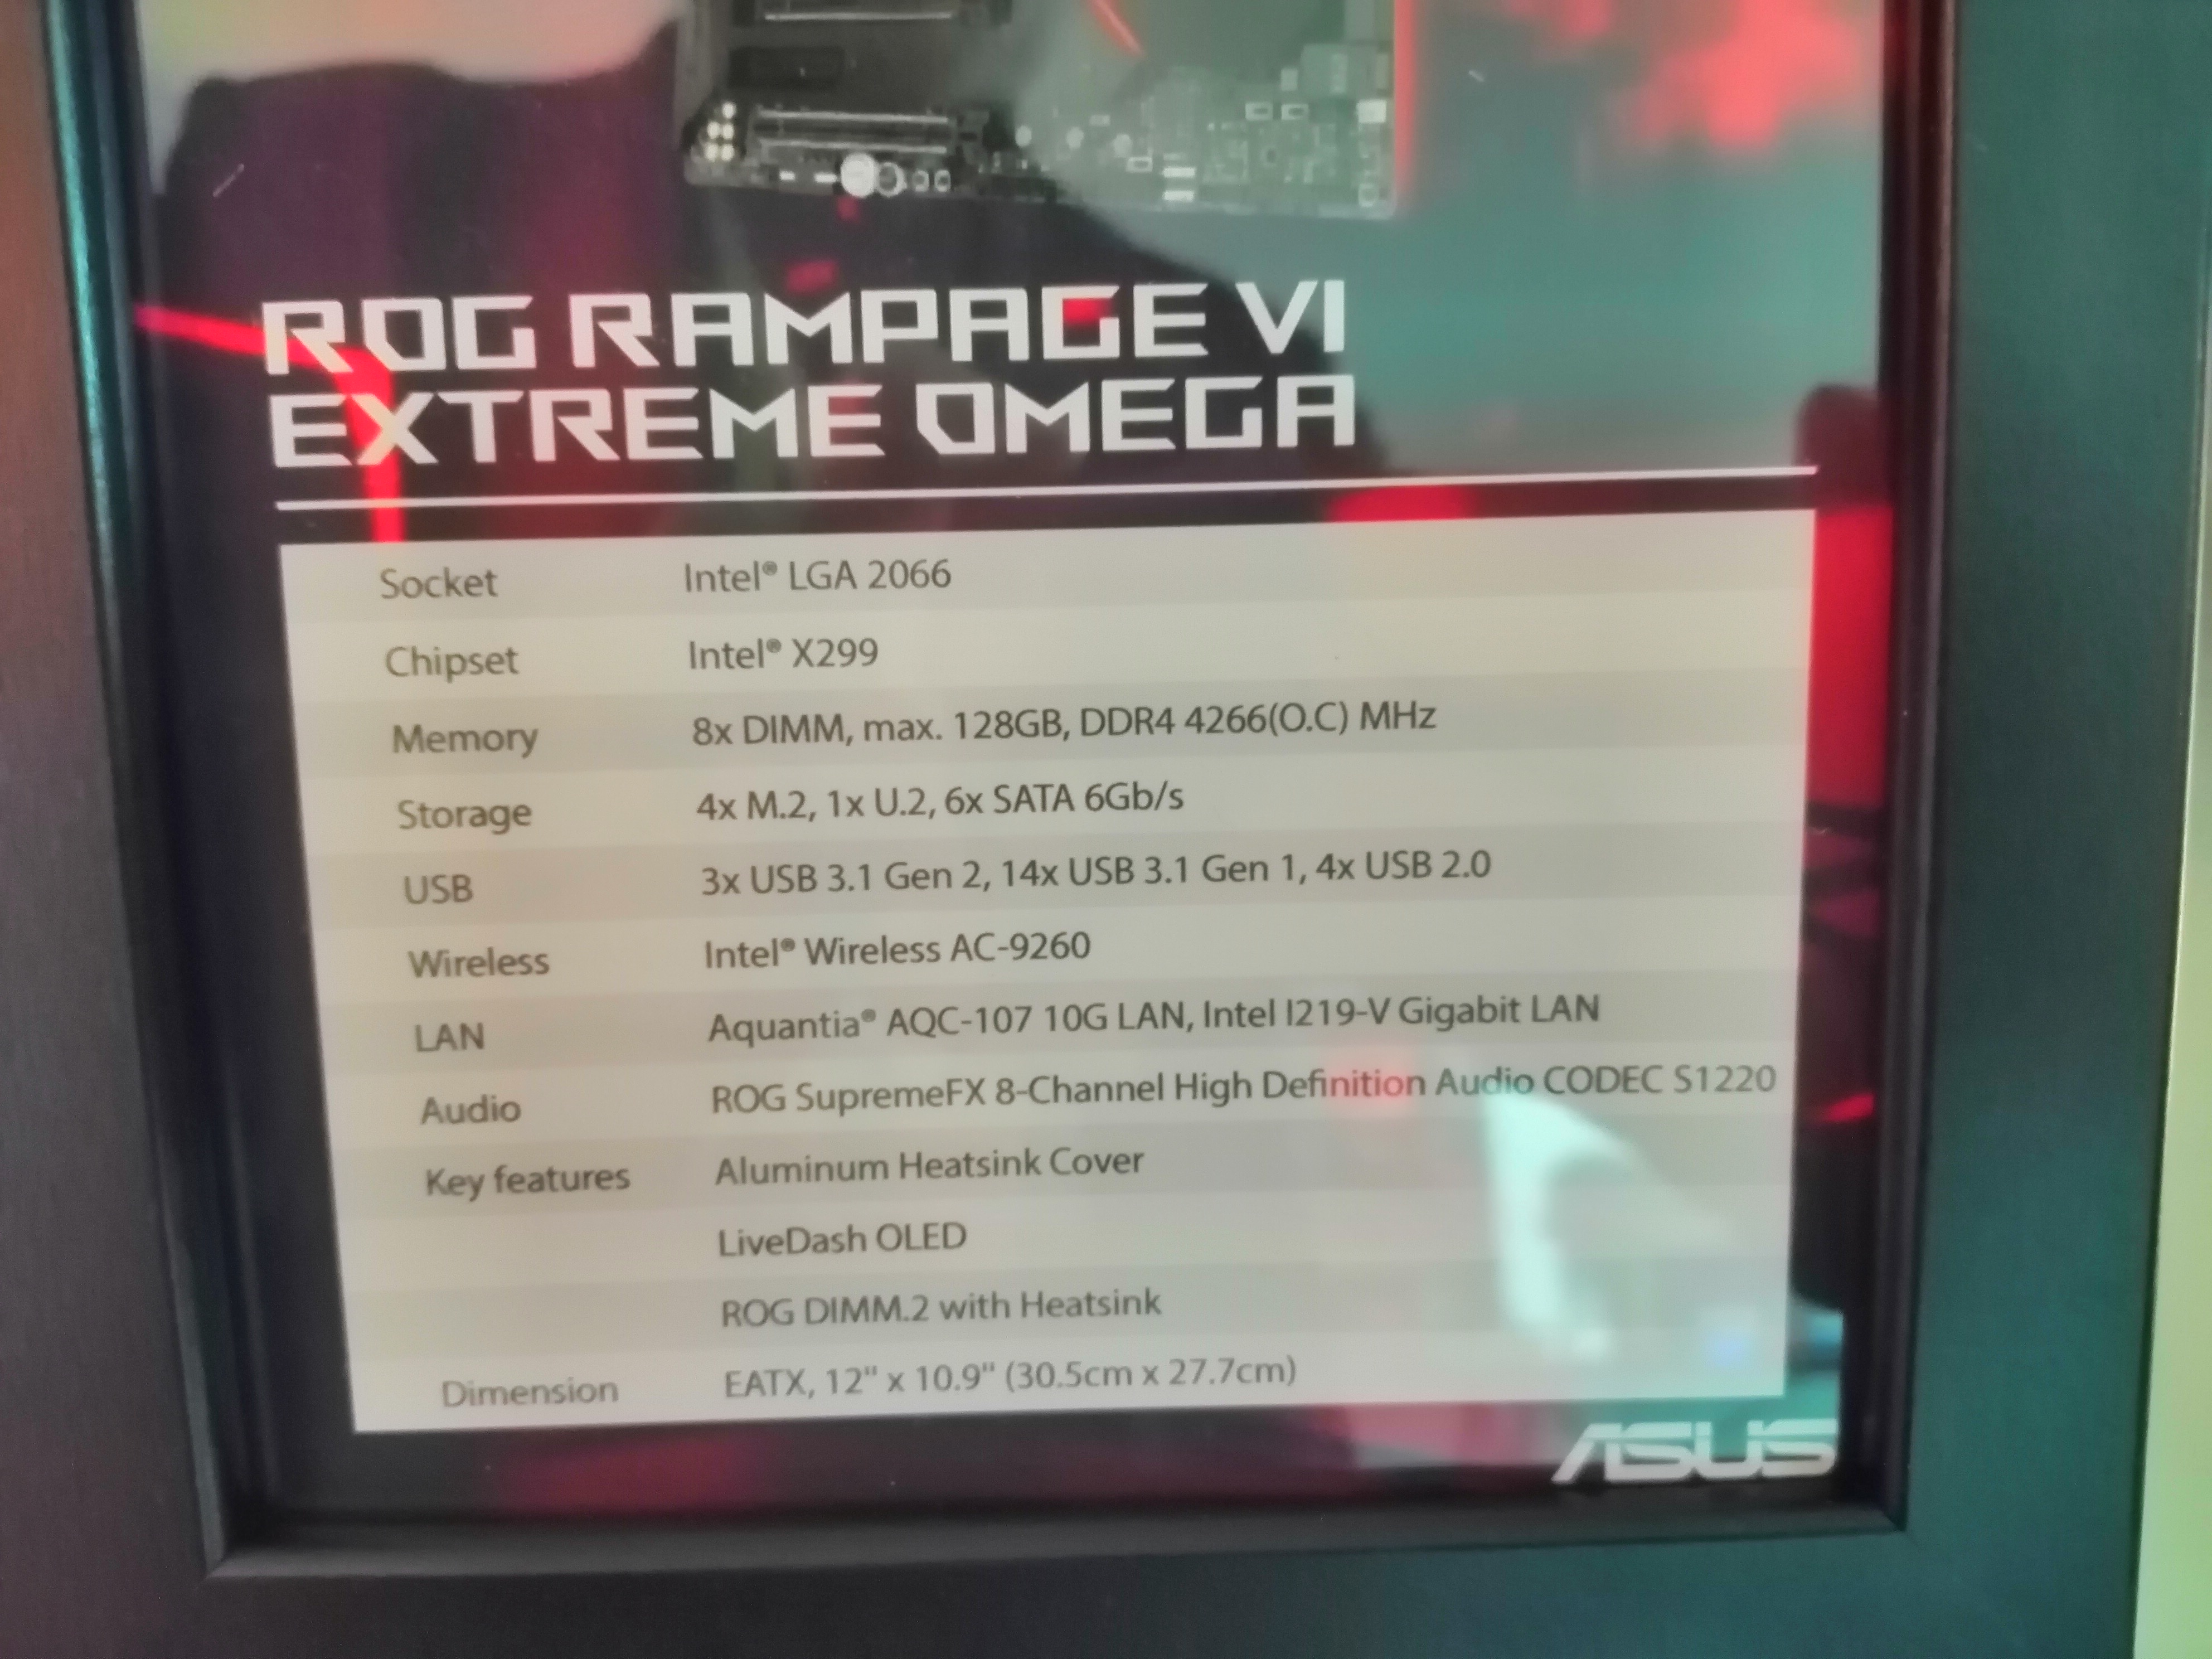 CES 2019: ASUS ROG Rampage VI Extreme Omega X299 Motherboard